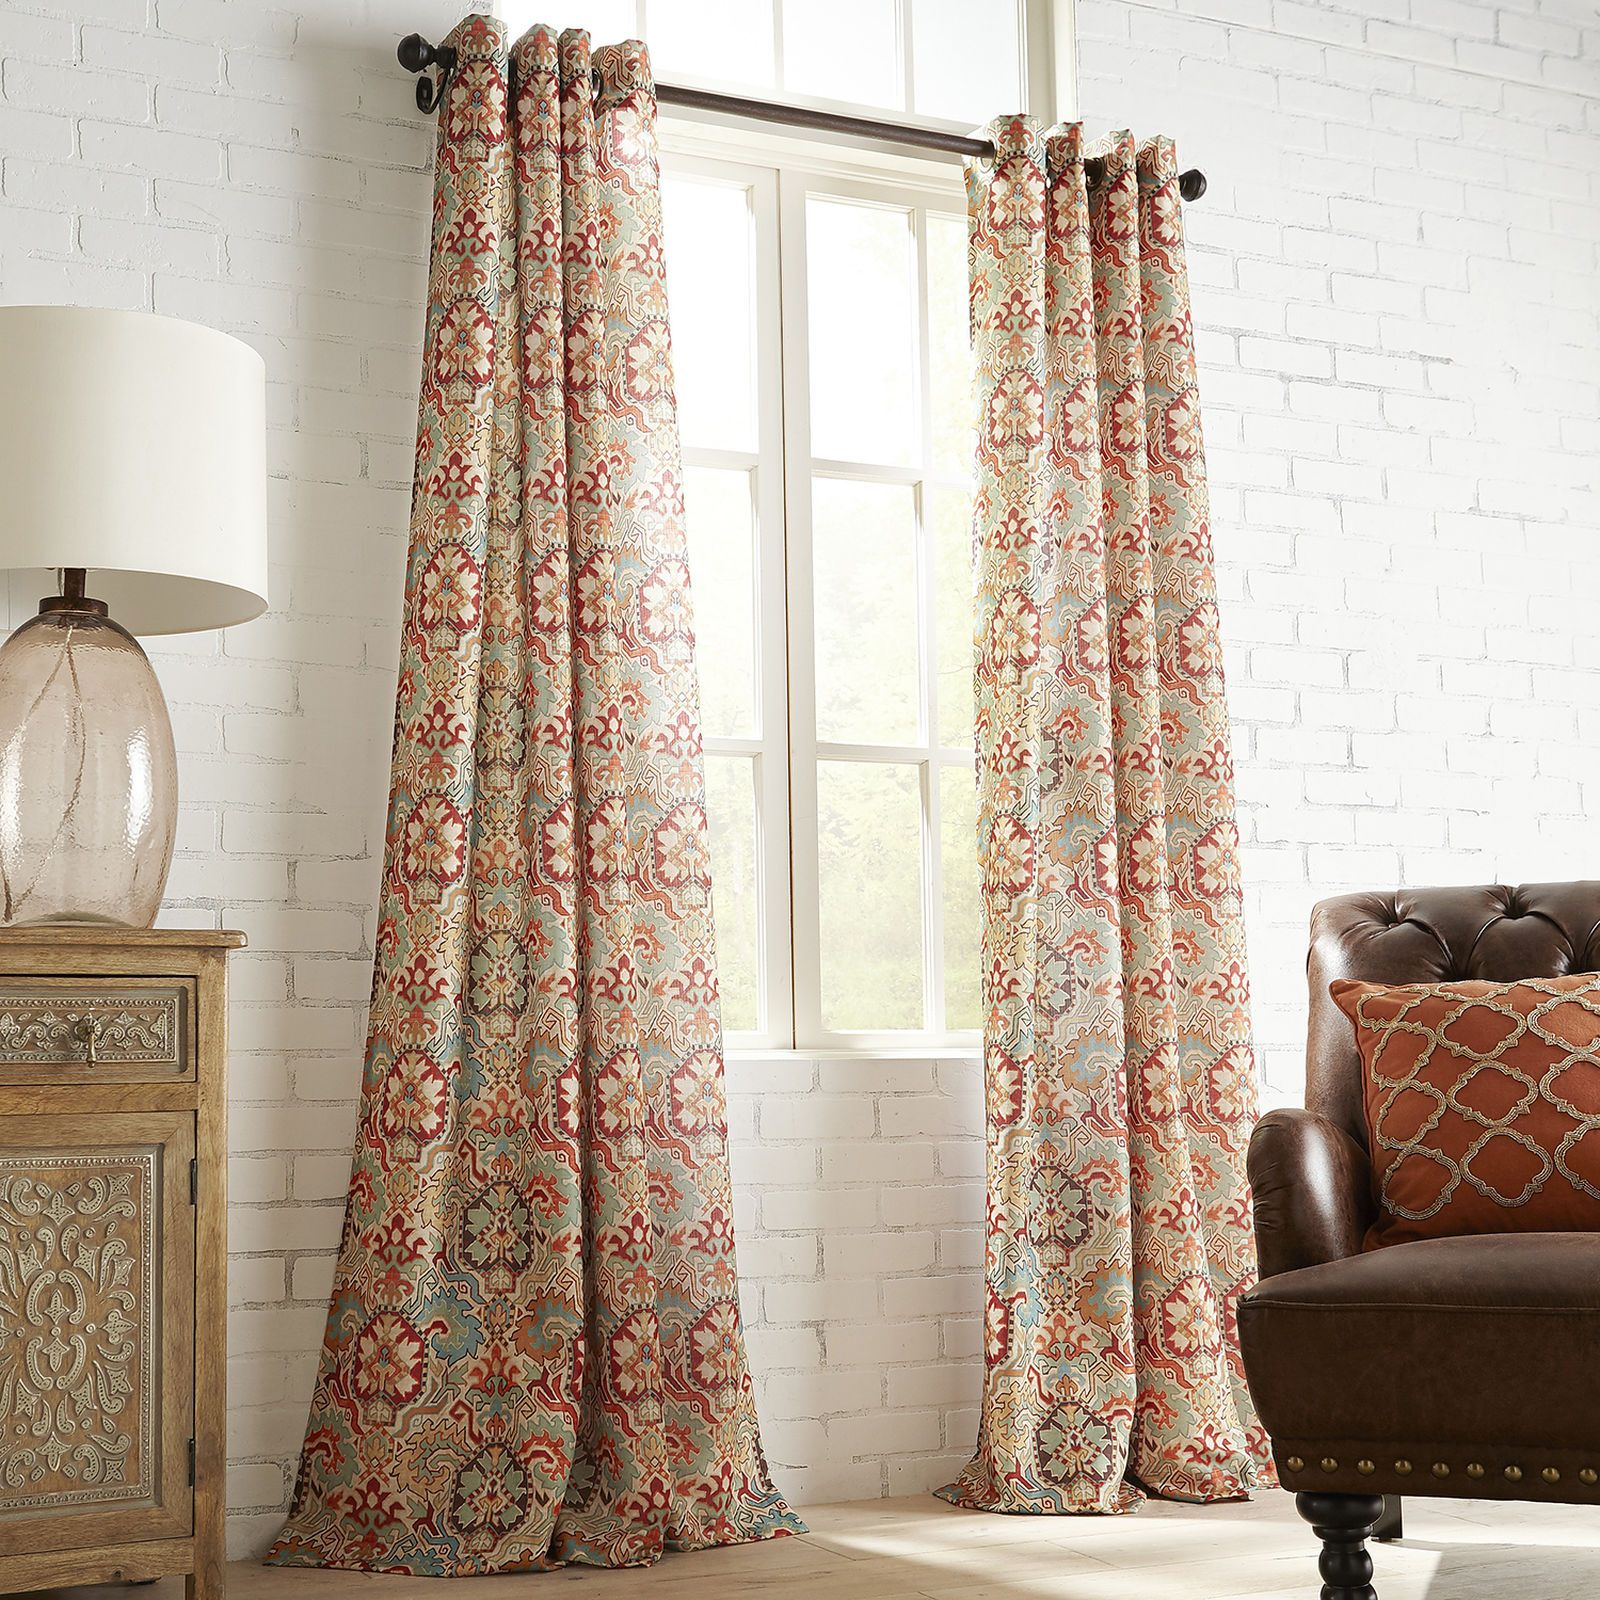 Patterned curtains living room - Window